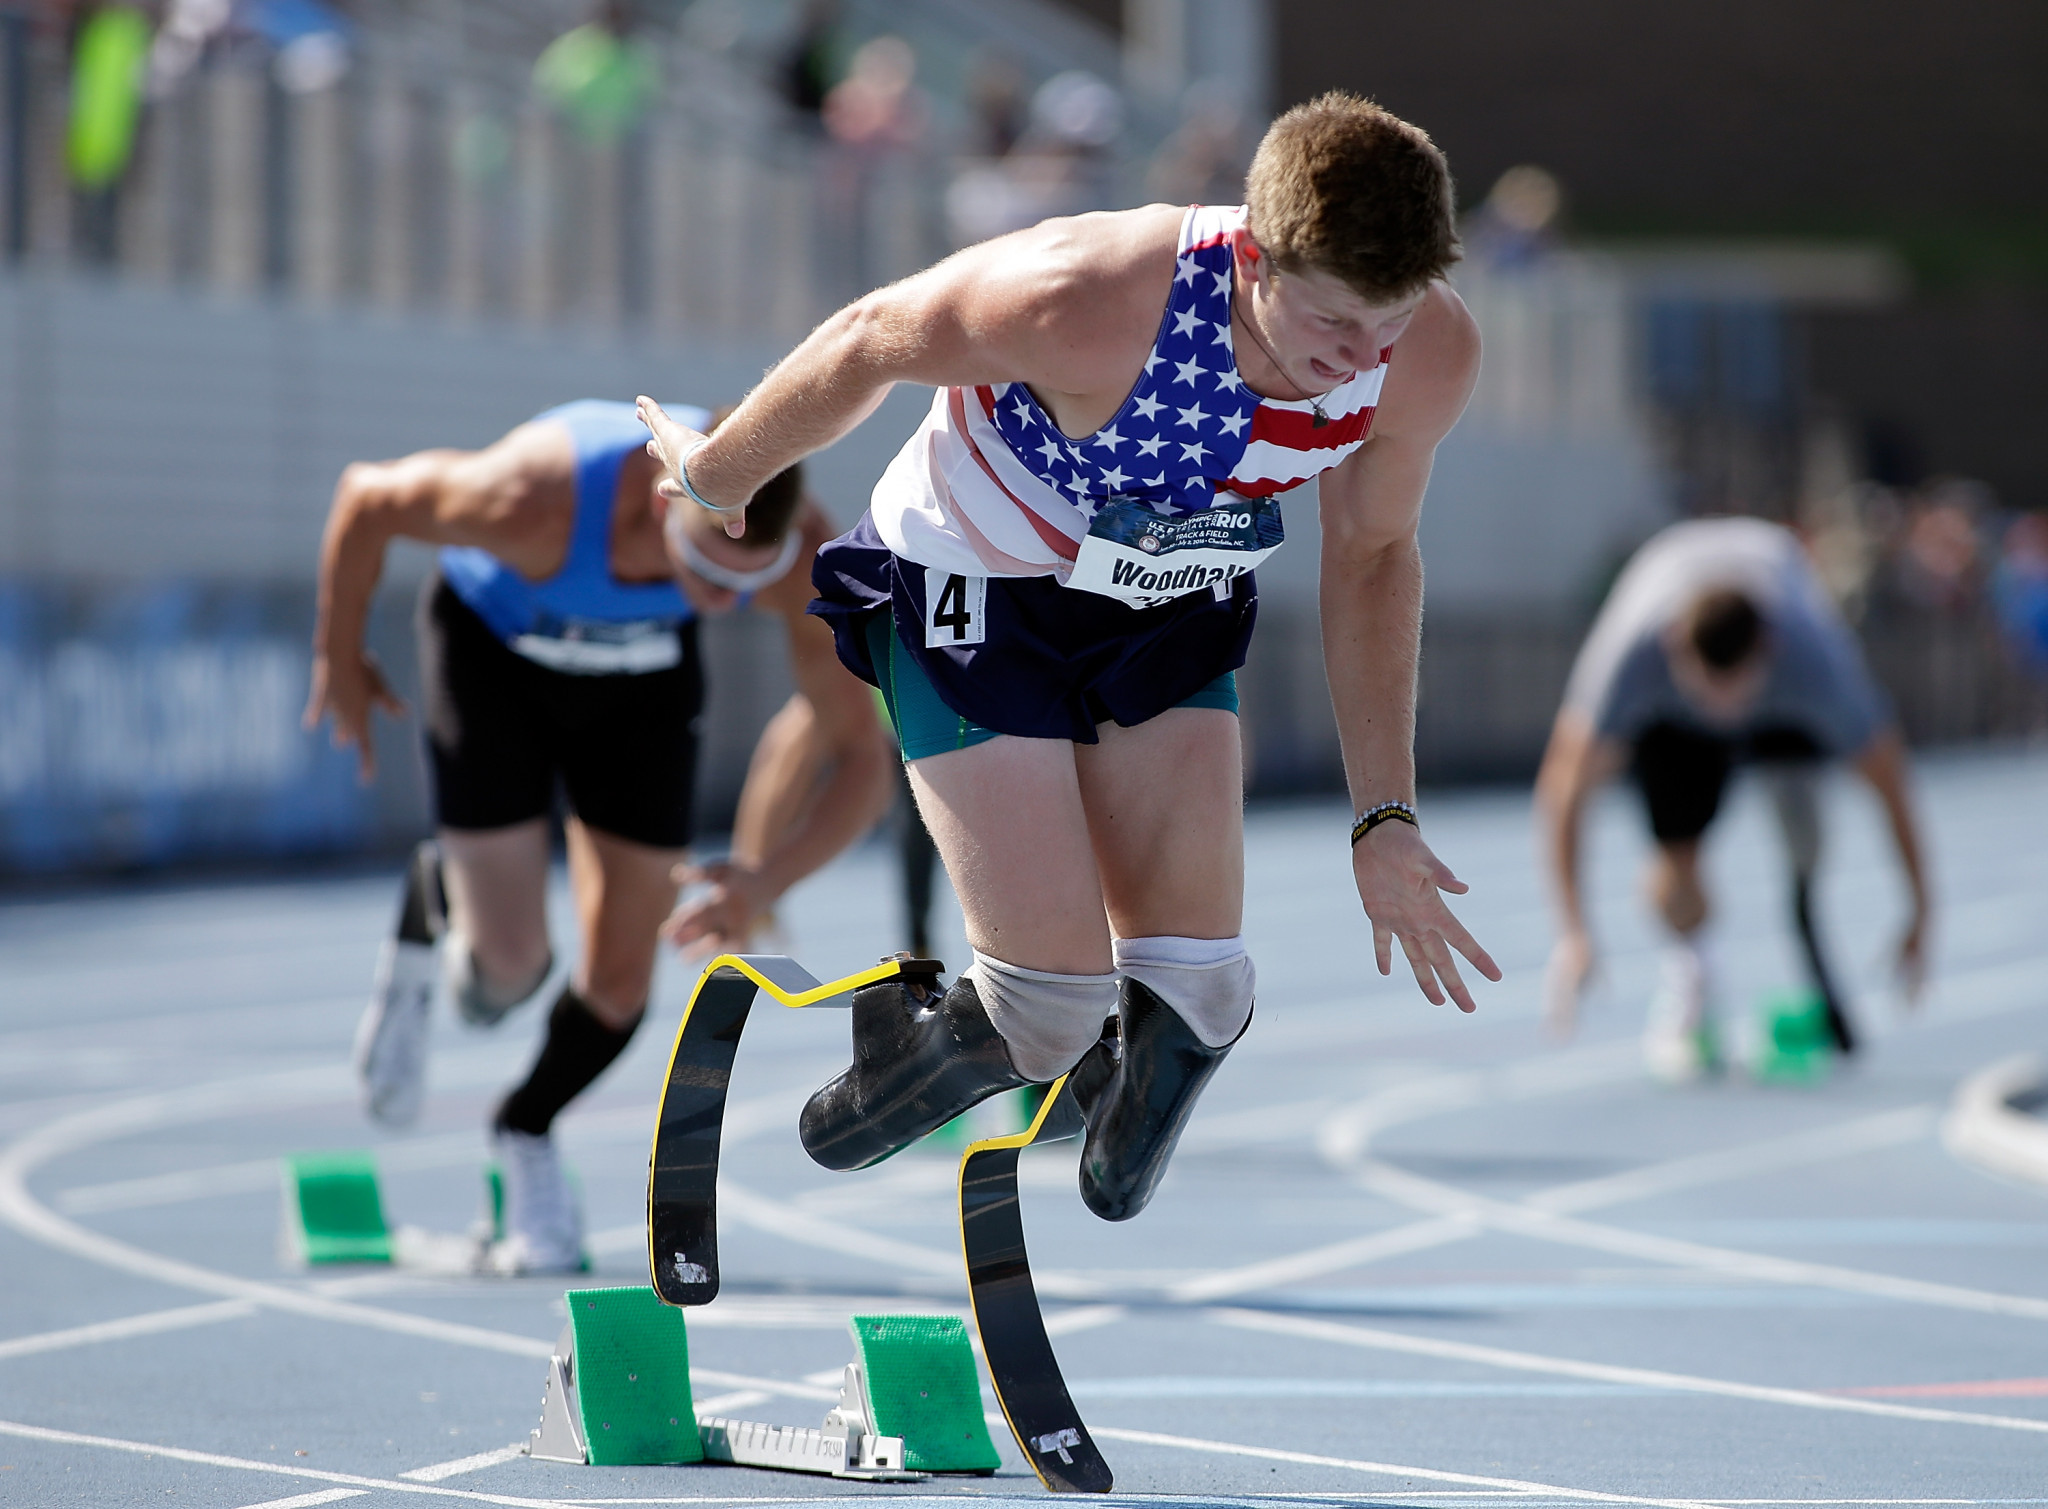 US Paralympics honours top 71 high school track and field athletes